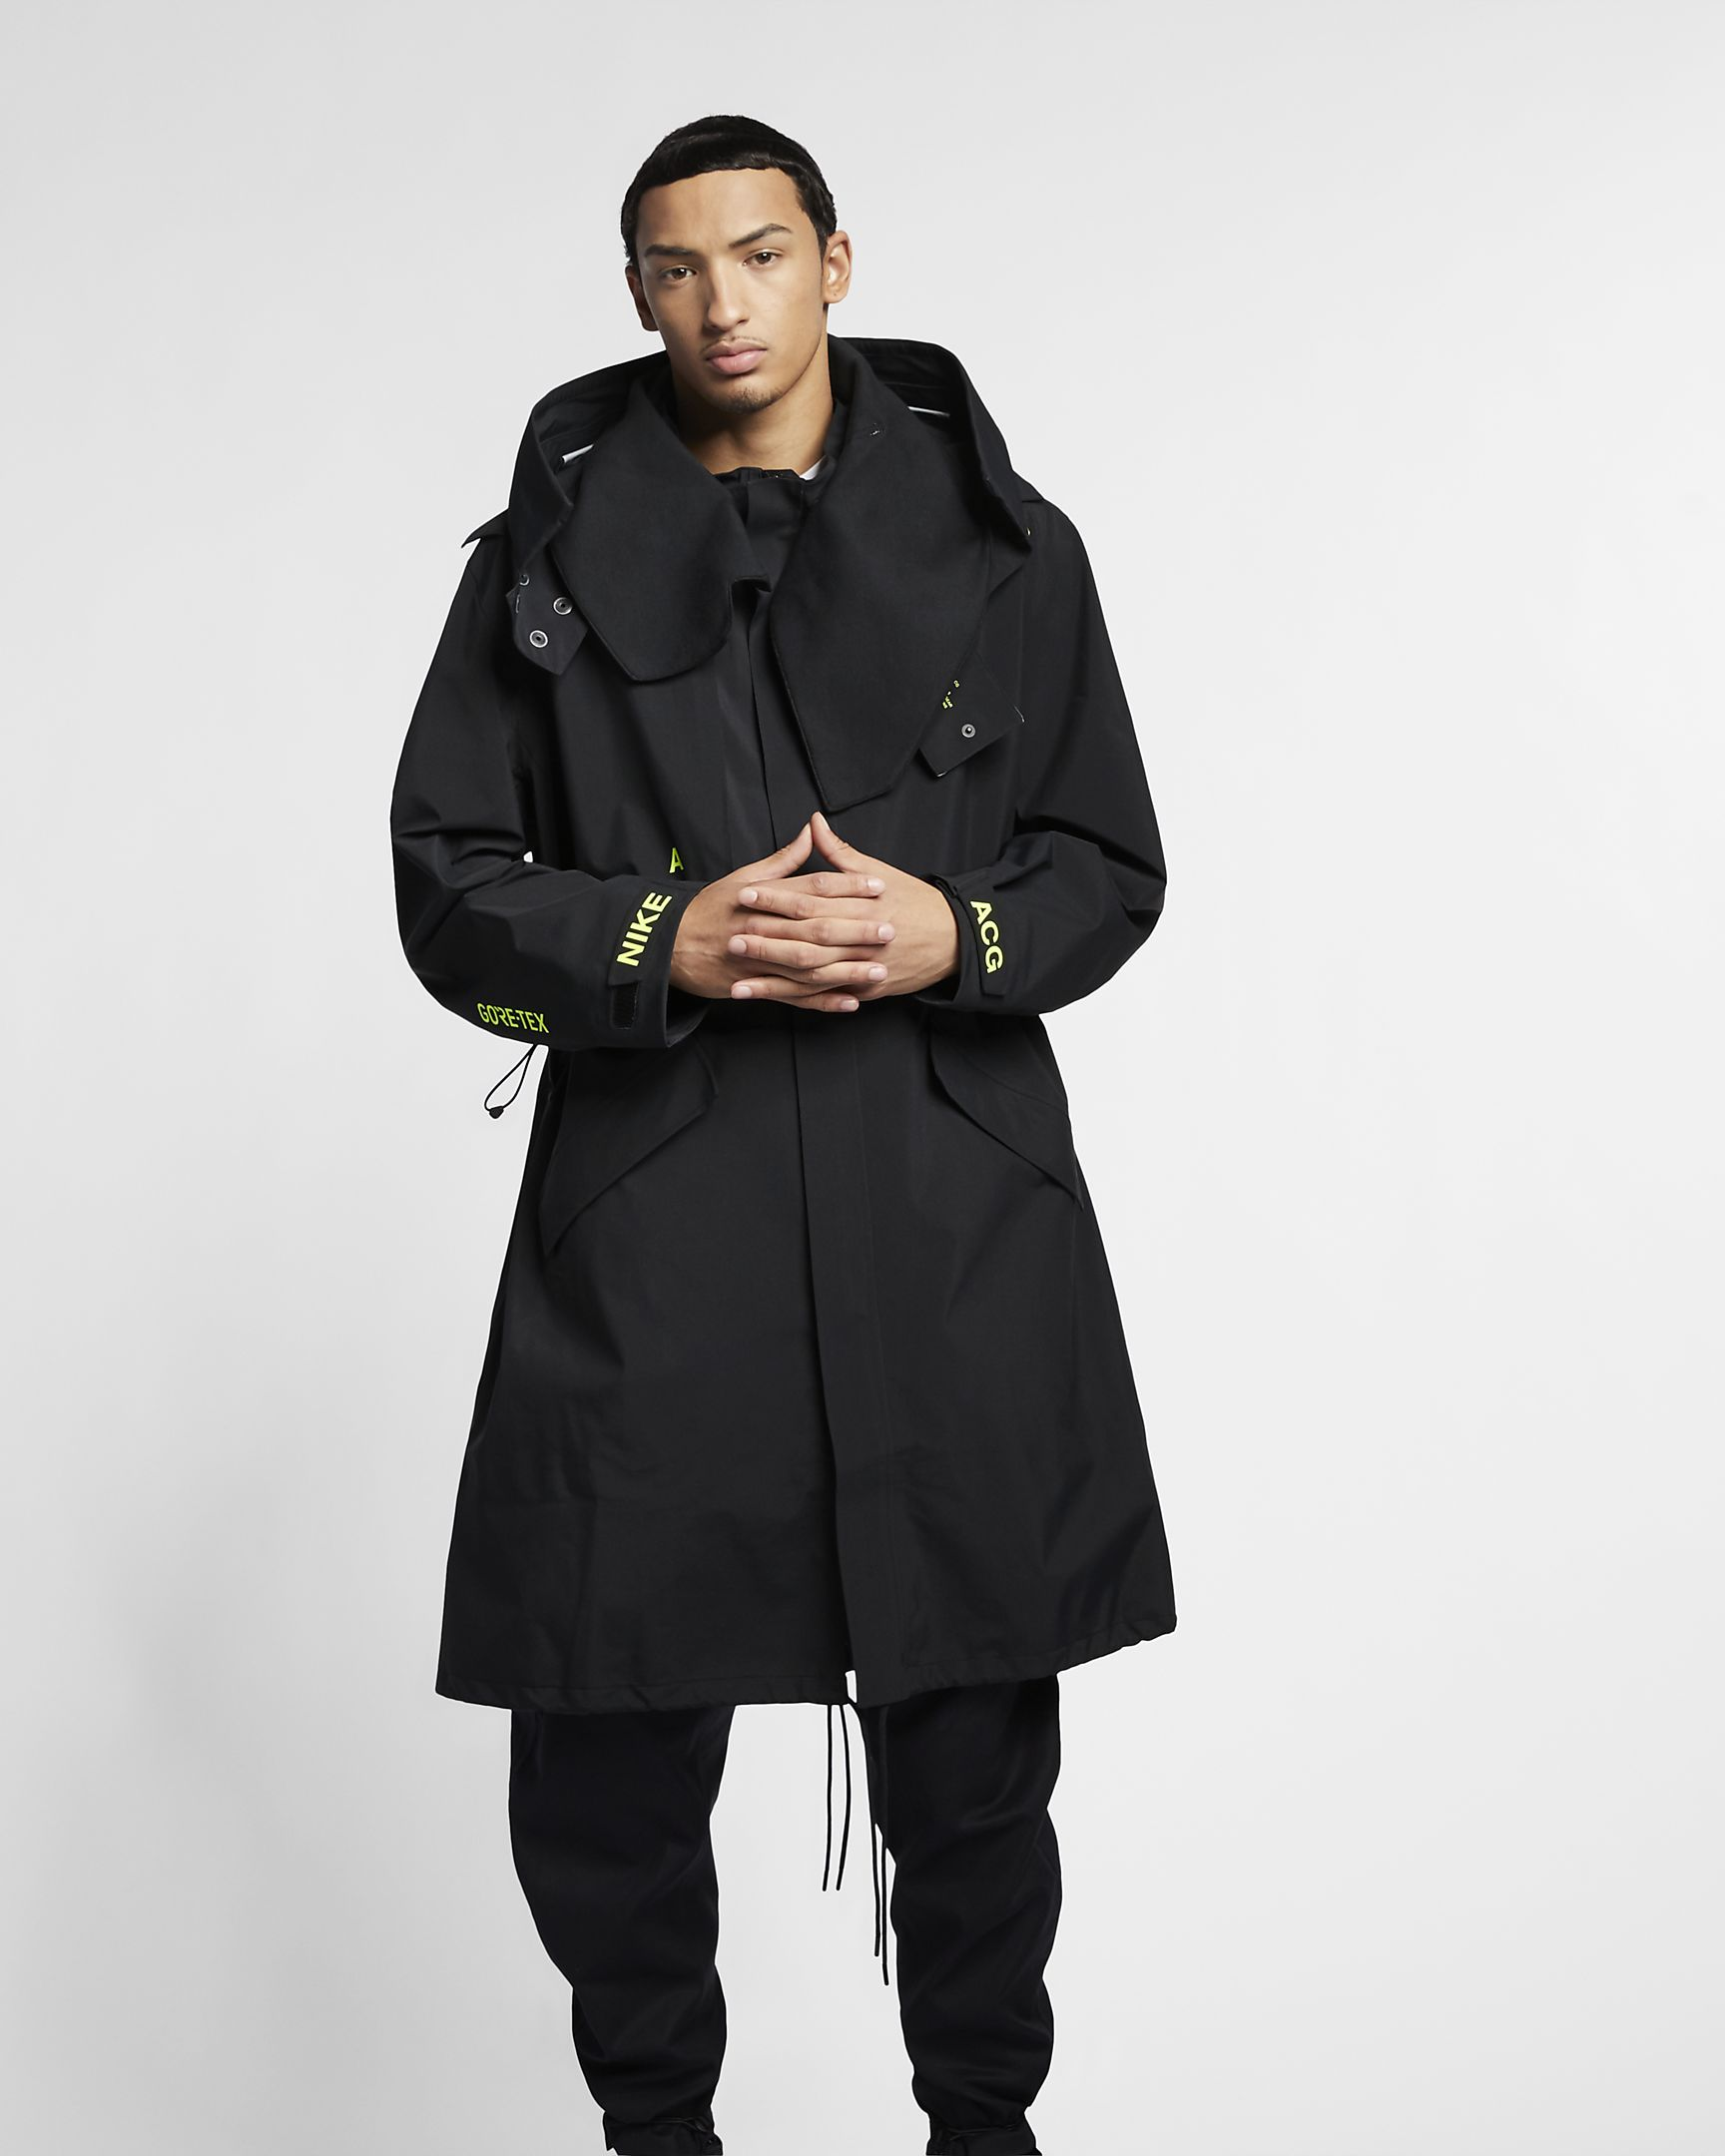 NikeLab ACG GORE TEX Men's Jacket